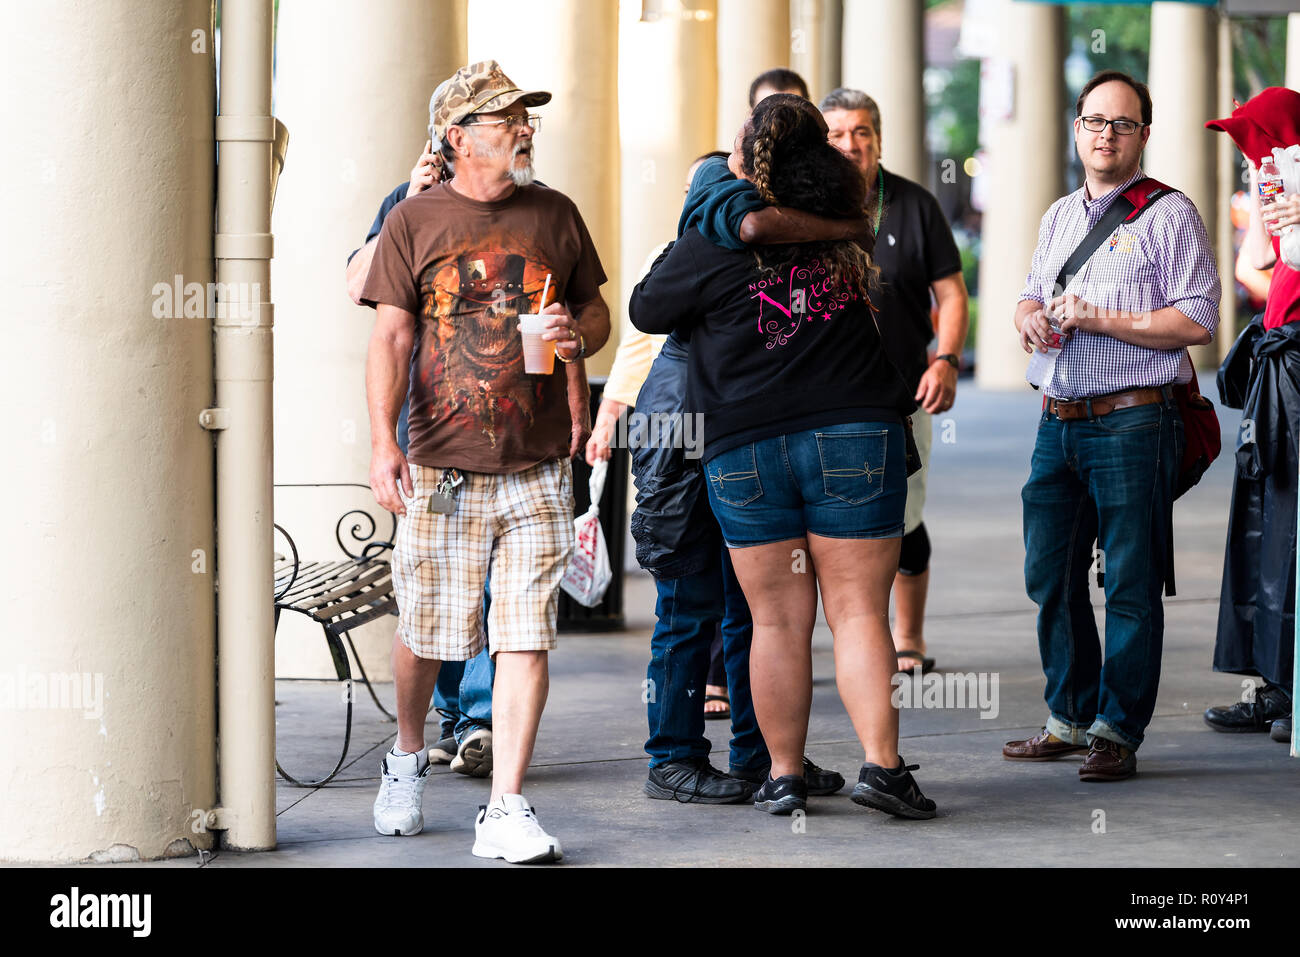 New Orleans, USA - April 22, 2018: Old town Decatur street in Louisiana famous city, people standing hugging, embracing - Stock Image